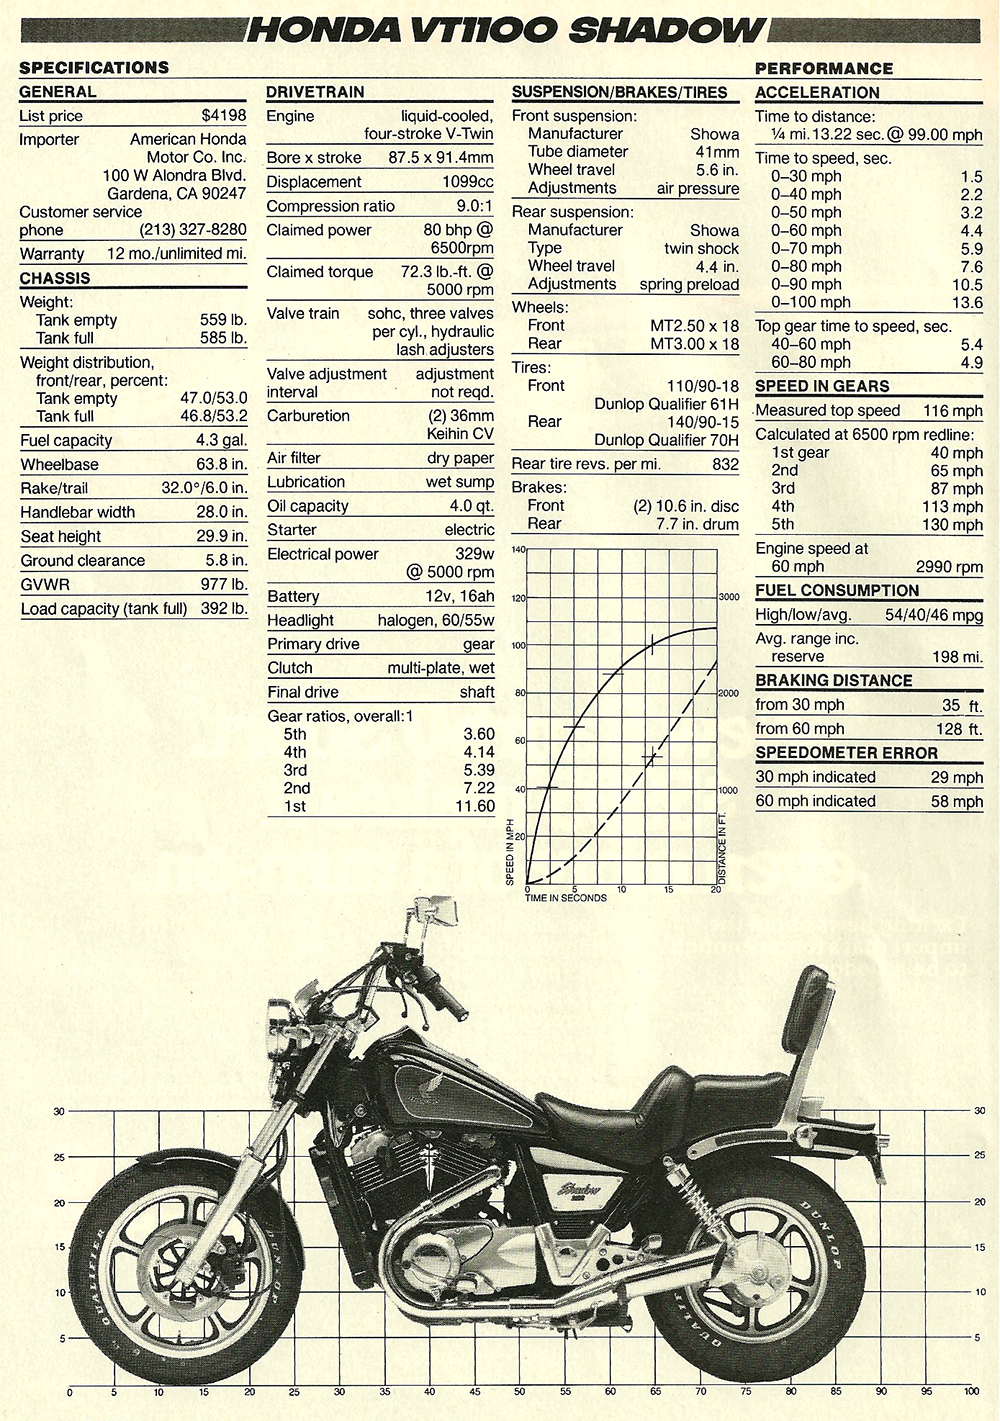 1985 Honda VT1100 Shadow road test 06.jpg